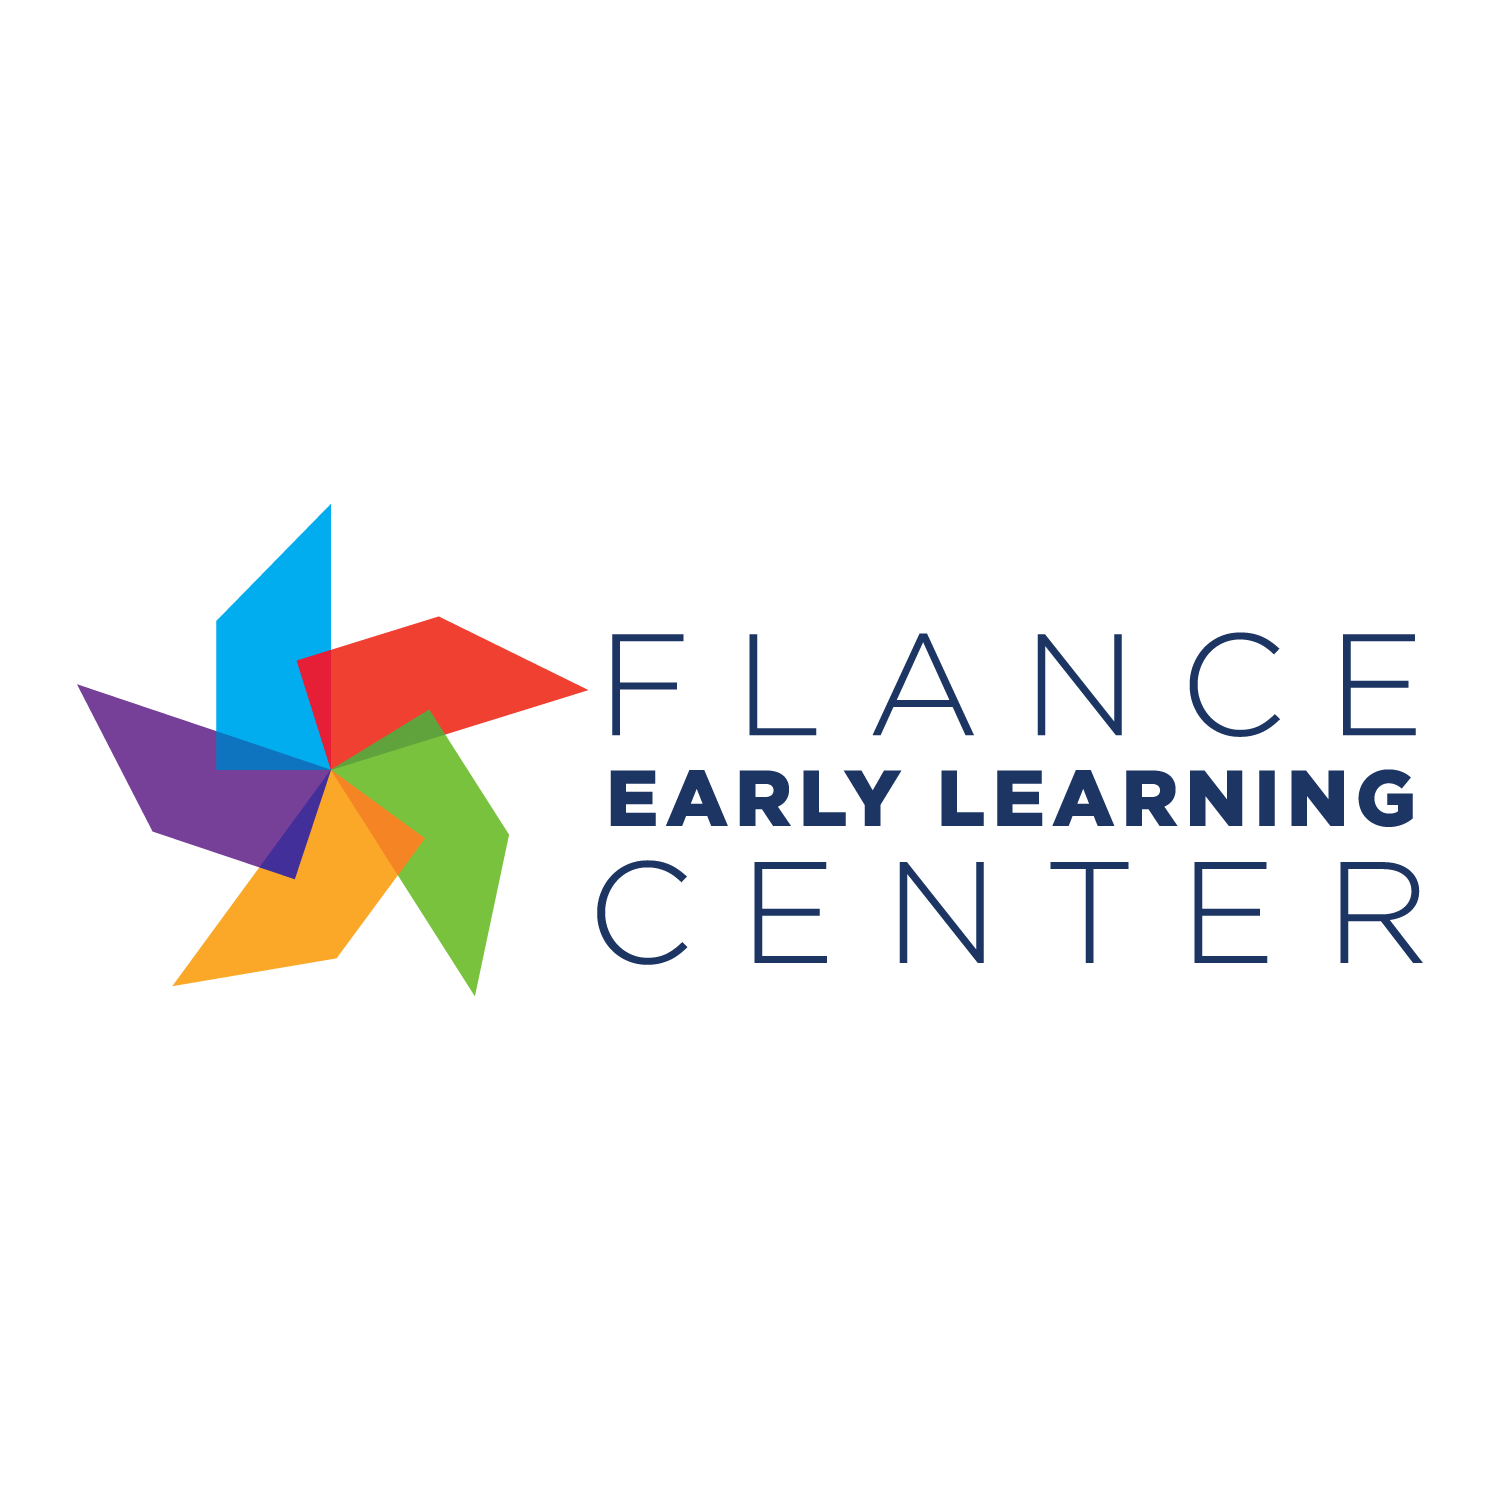 Flance Early Learning Center Thumbnail